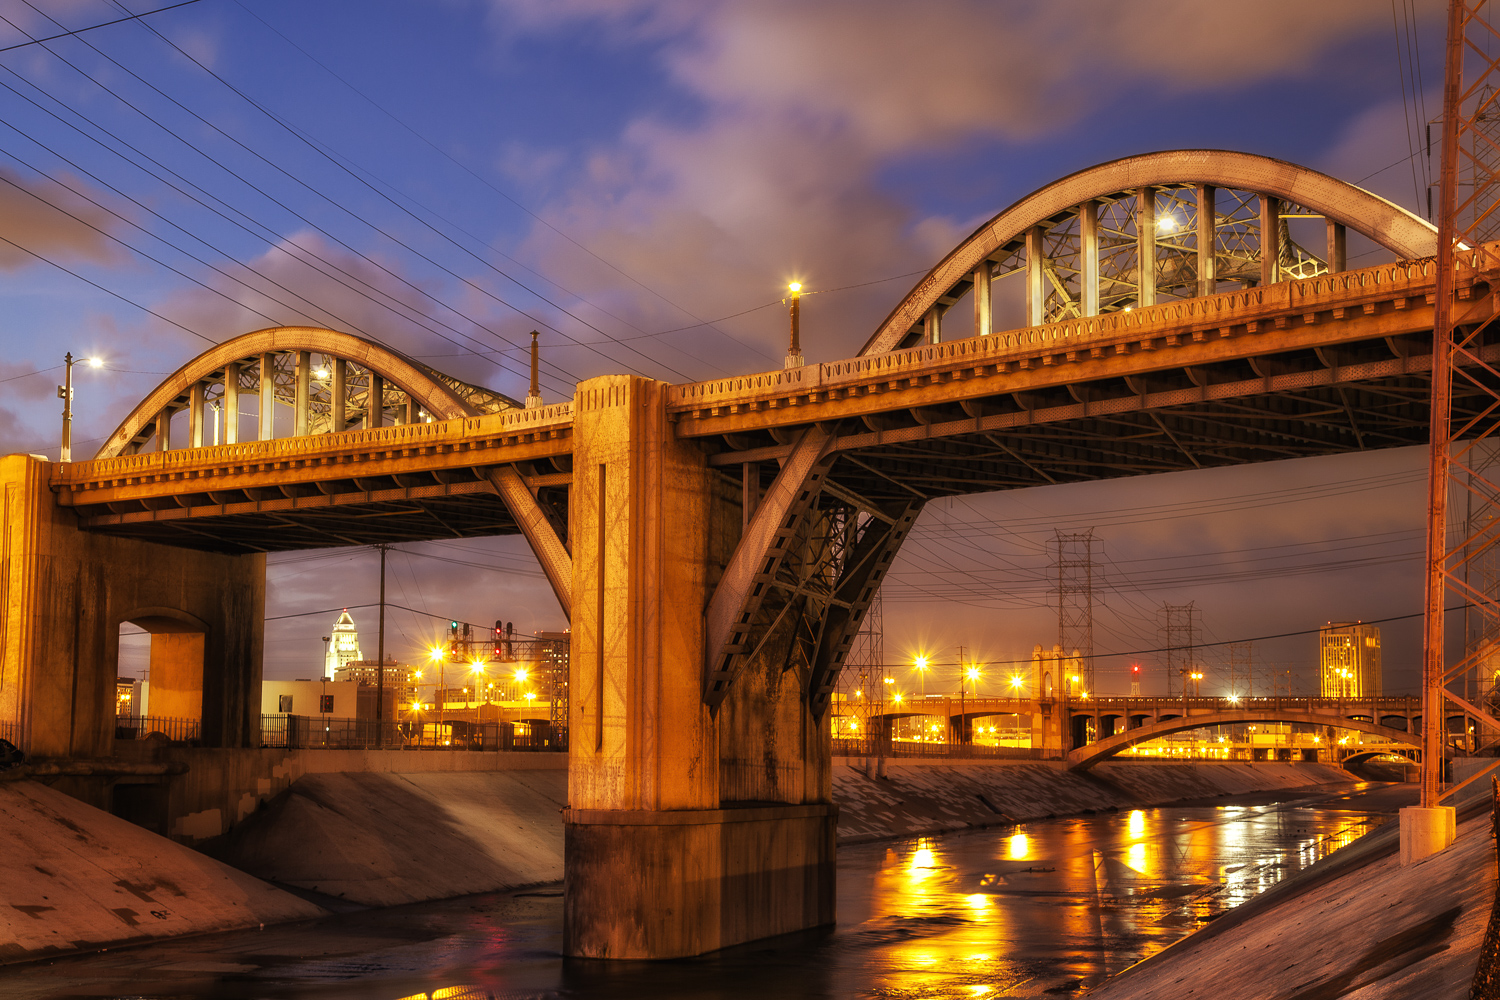 6th Street Bridge over the Los Angeles River, Downtown Los Angeles, California, USA